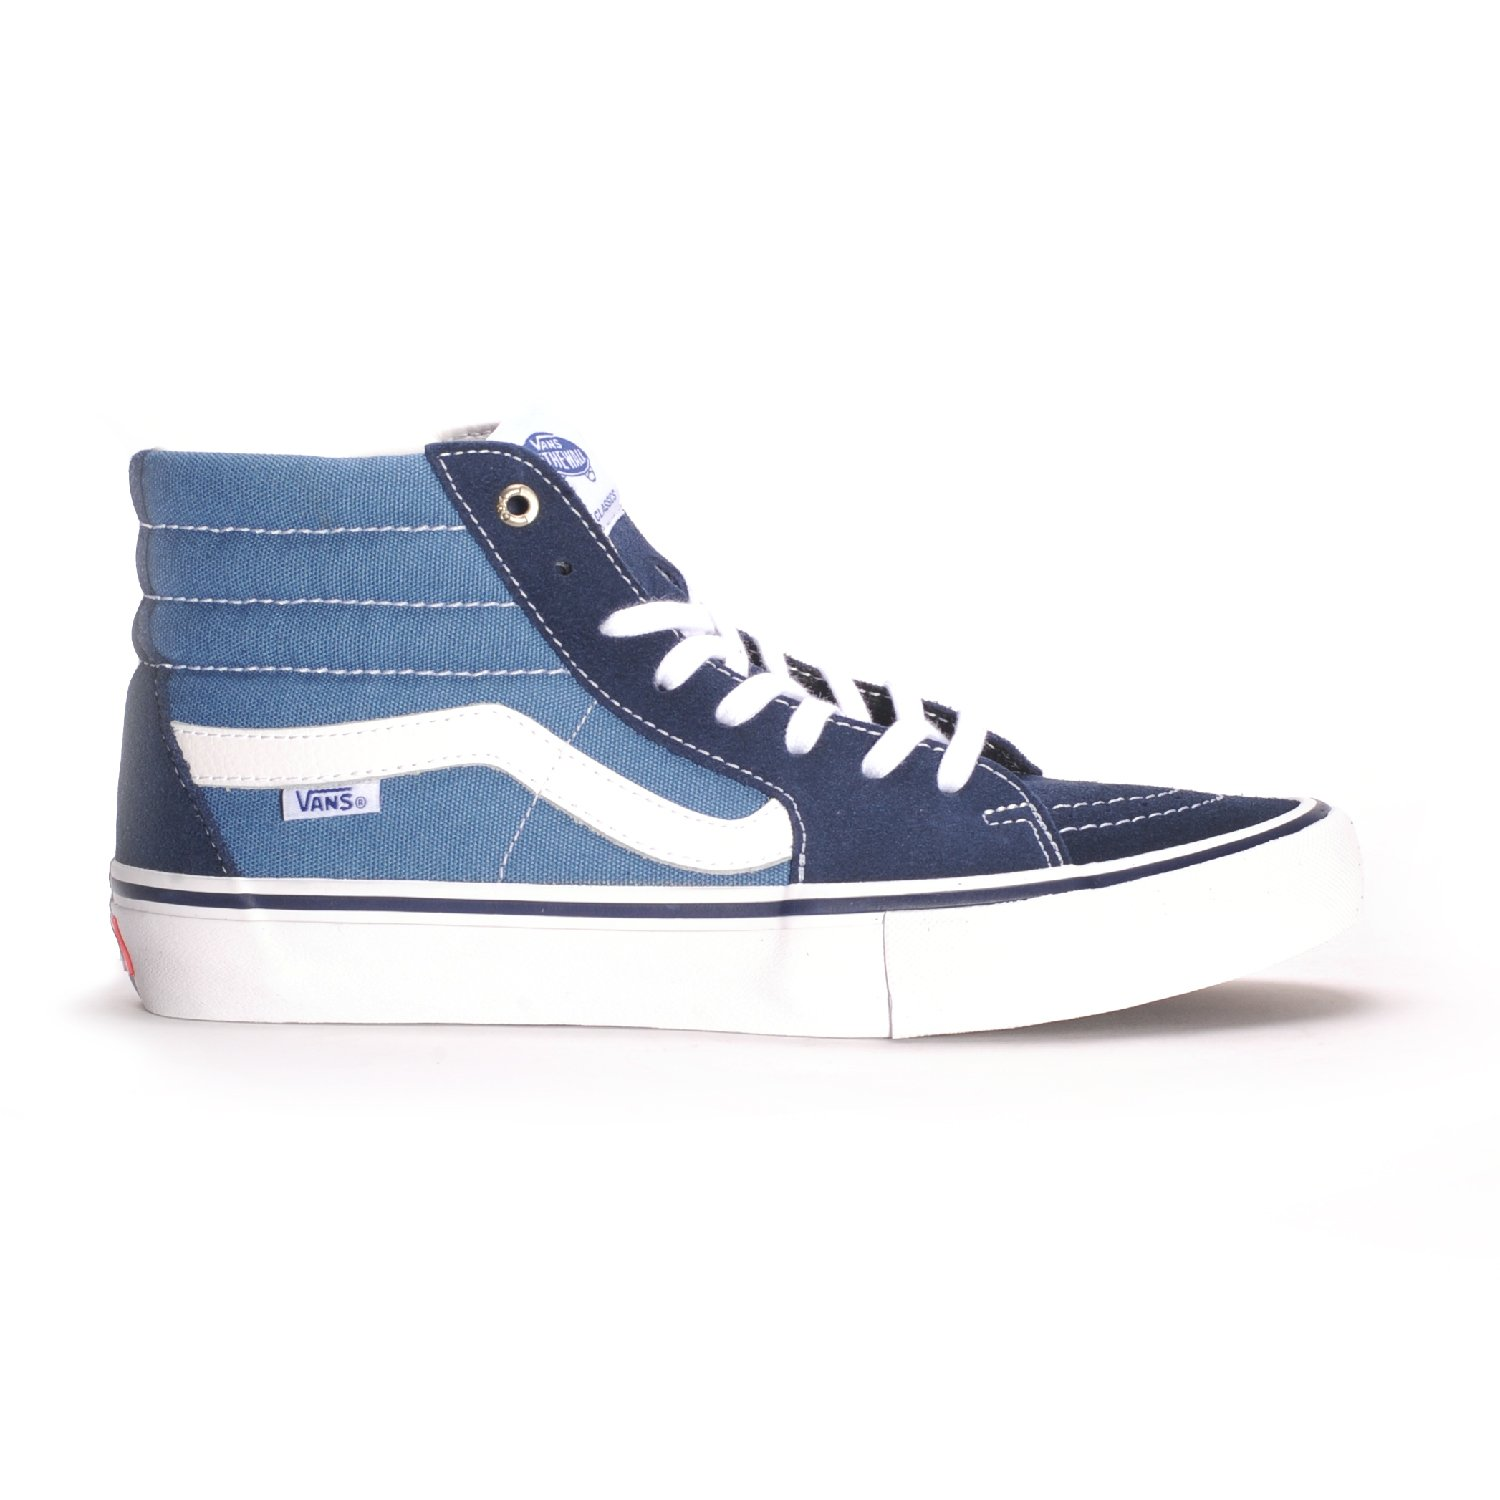 Vans Sk8-Hi Unisex Casual High-Top Skate Shoes, Comfortable and Durable in Signature Waffle Rubber Sole B01I0LIKMU 10 D(M) US|Navy/Stv/Navy